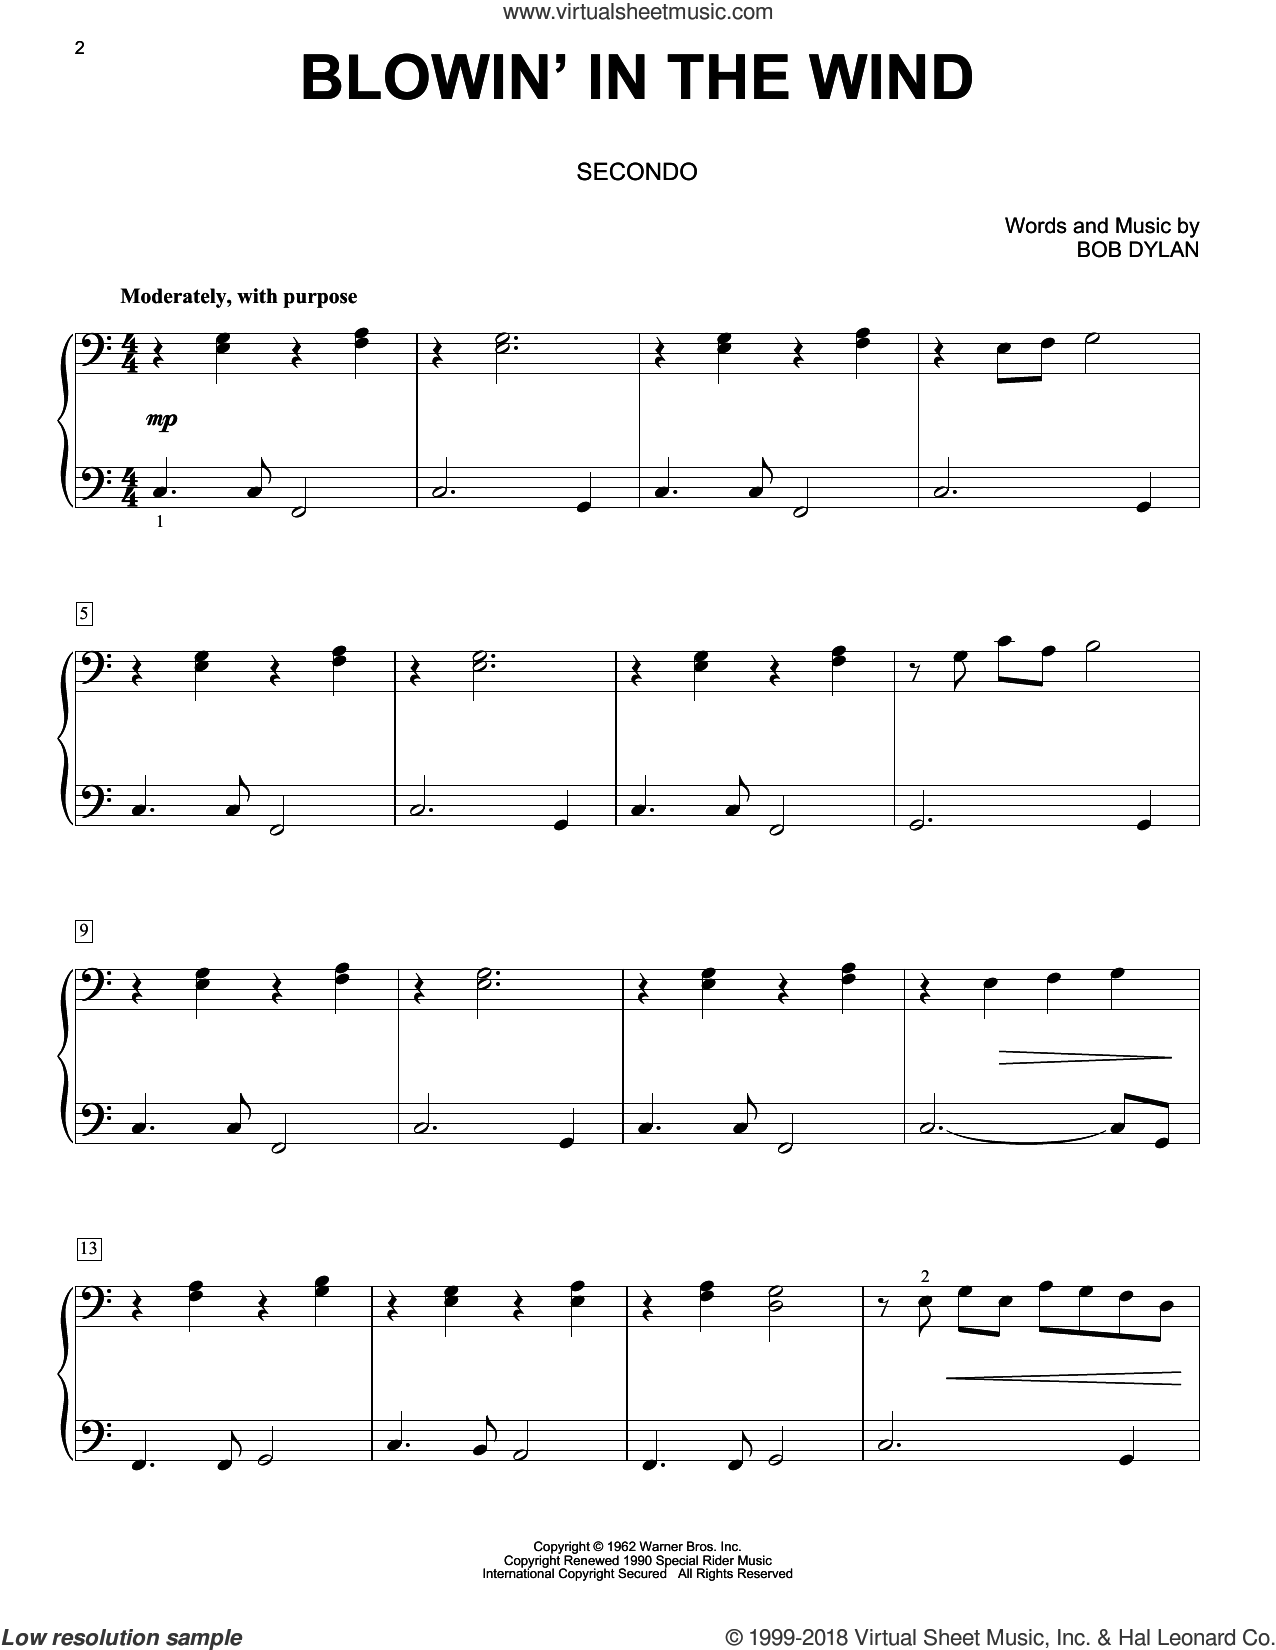 Blowin' In The Wind sheet music for piano four hands by Bob Dylan, Peter, Paul & Mary and Stevie Wonder, intermediate skill level